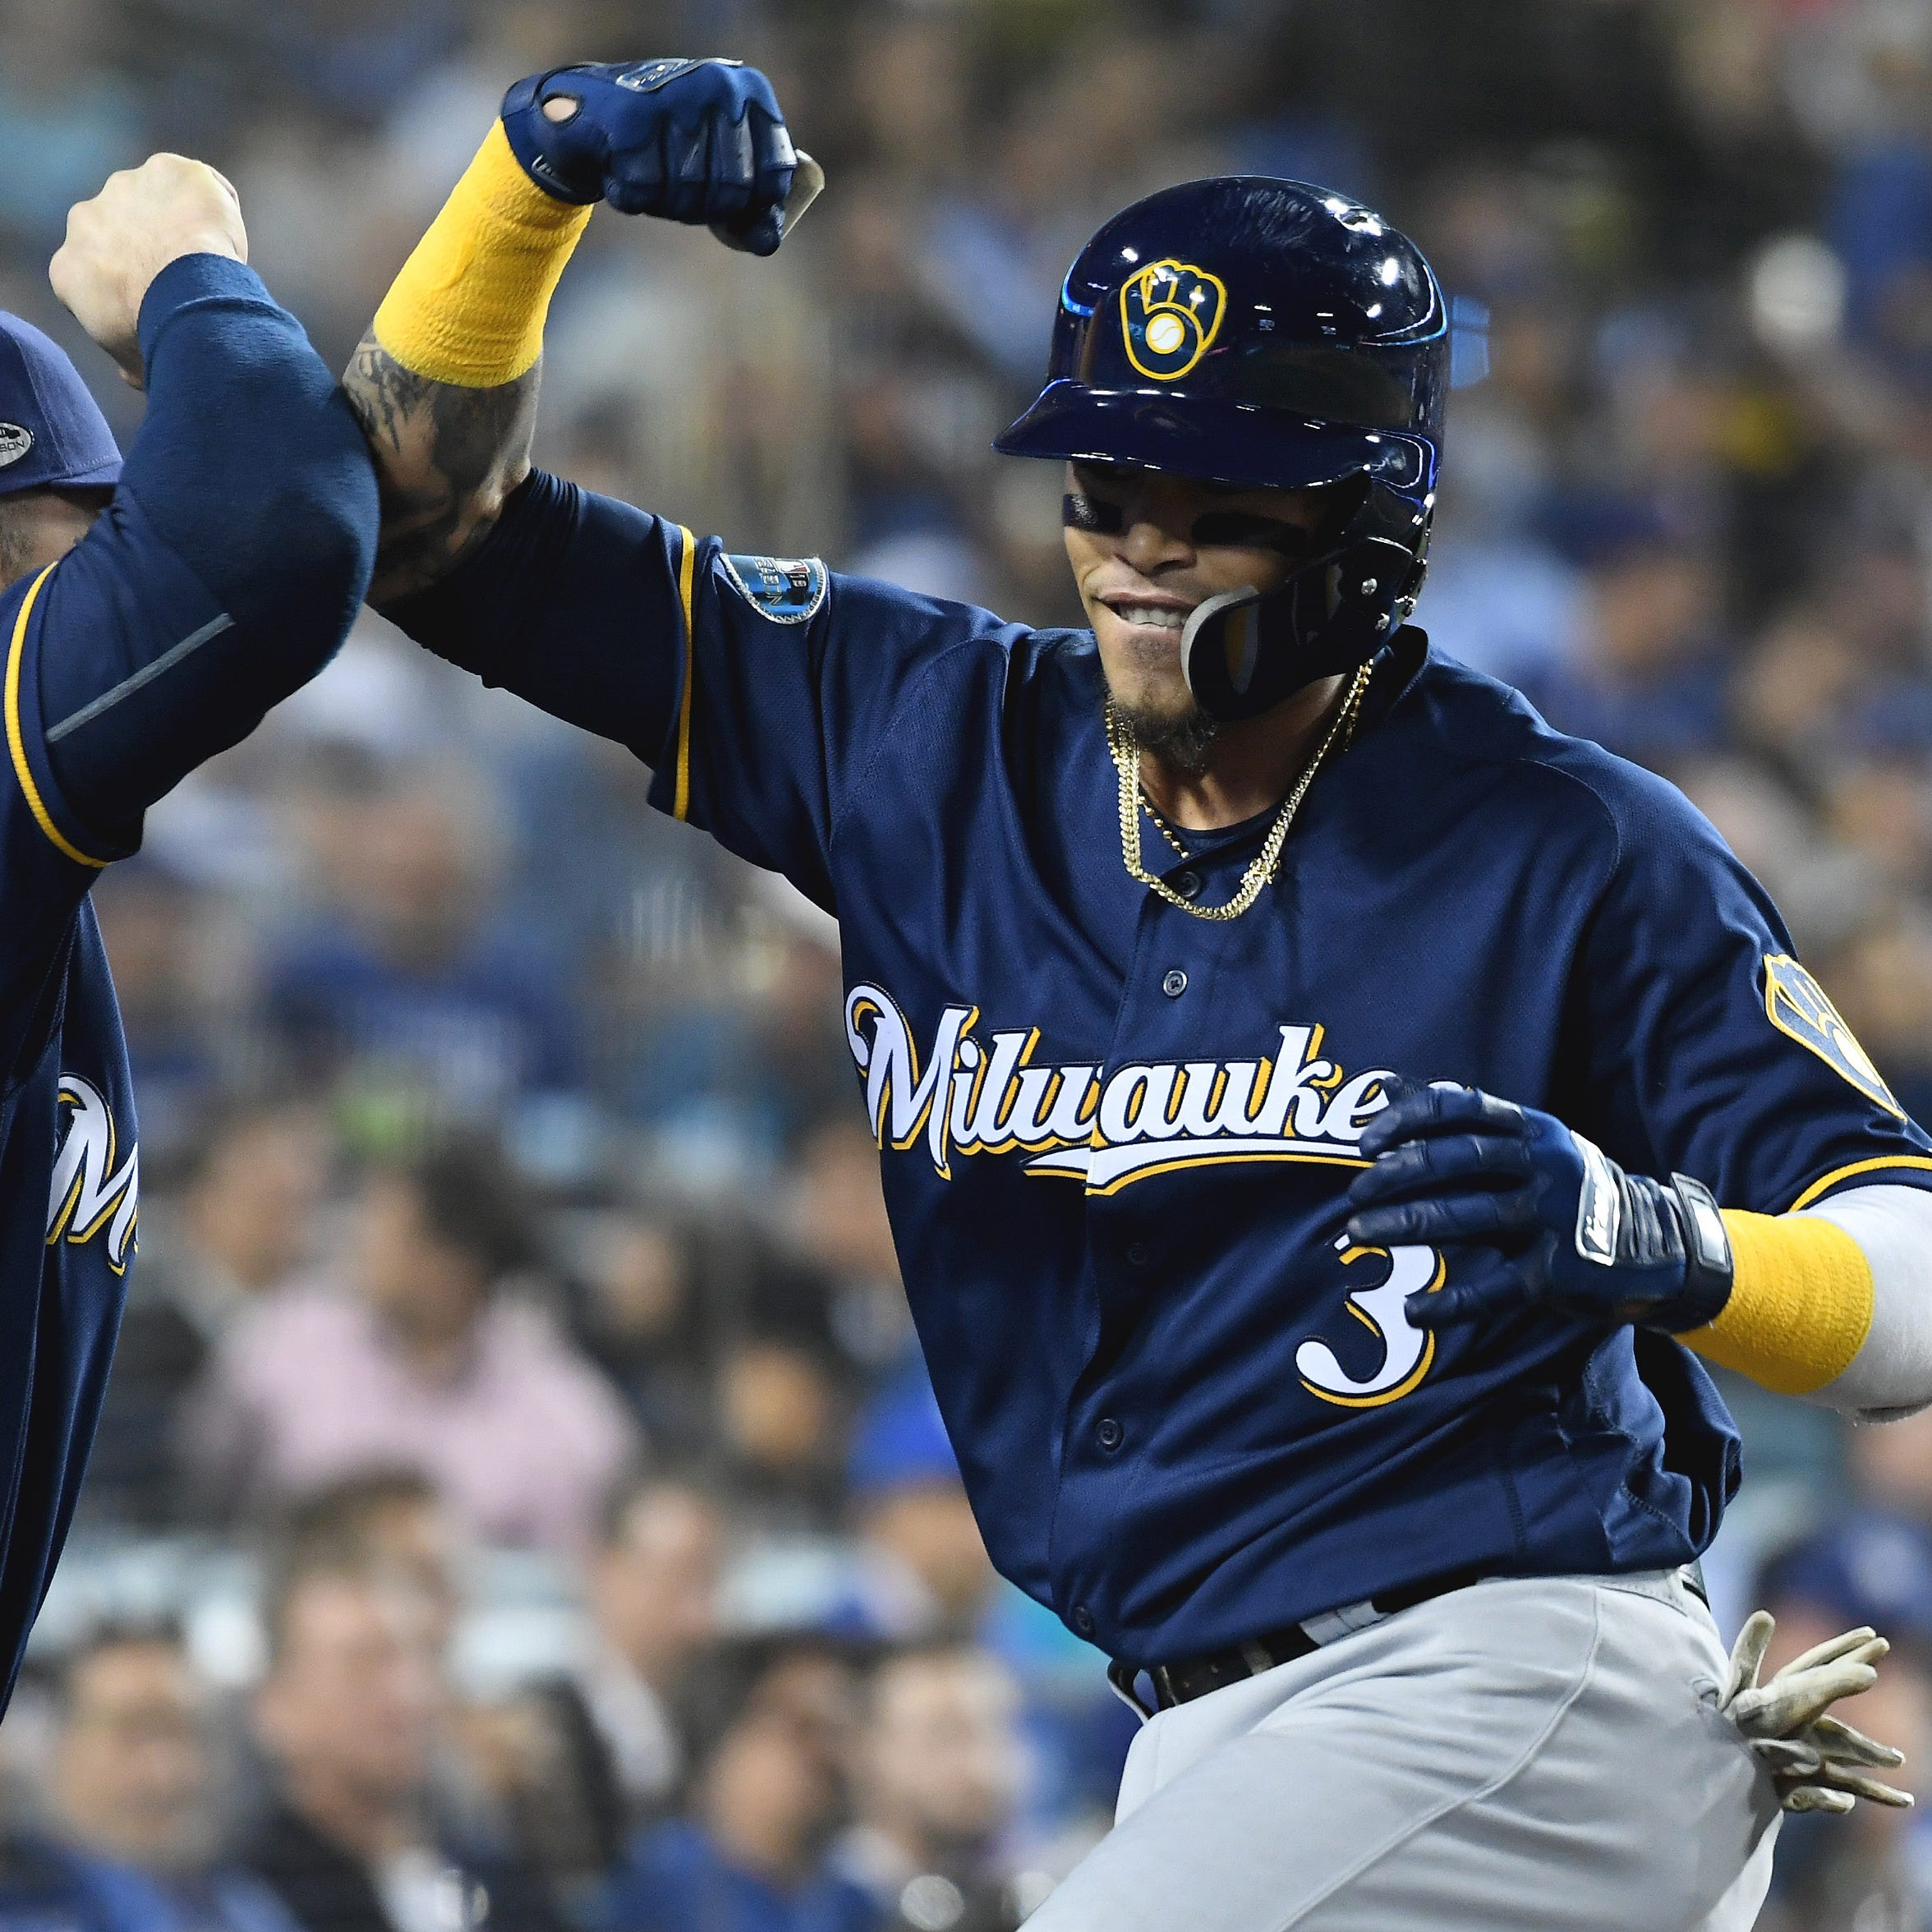 Fitness lessons you can learn from baseball and the Milwaukee Brewers